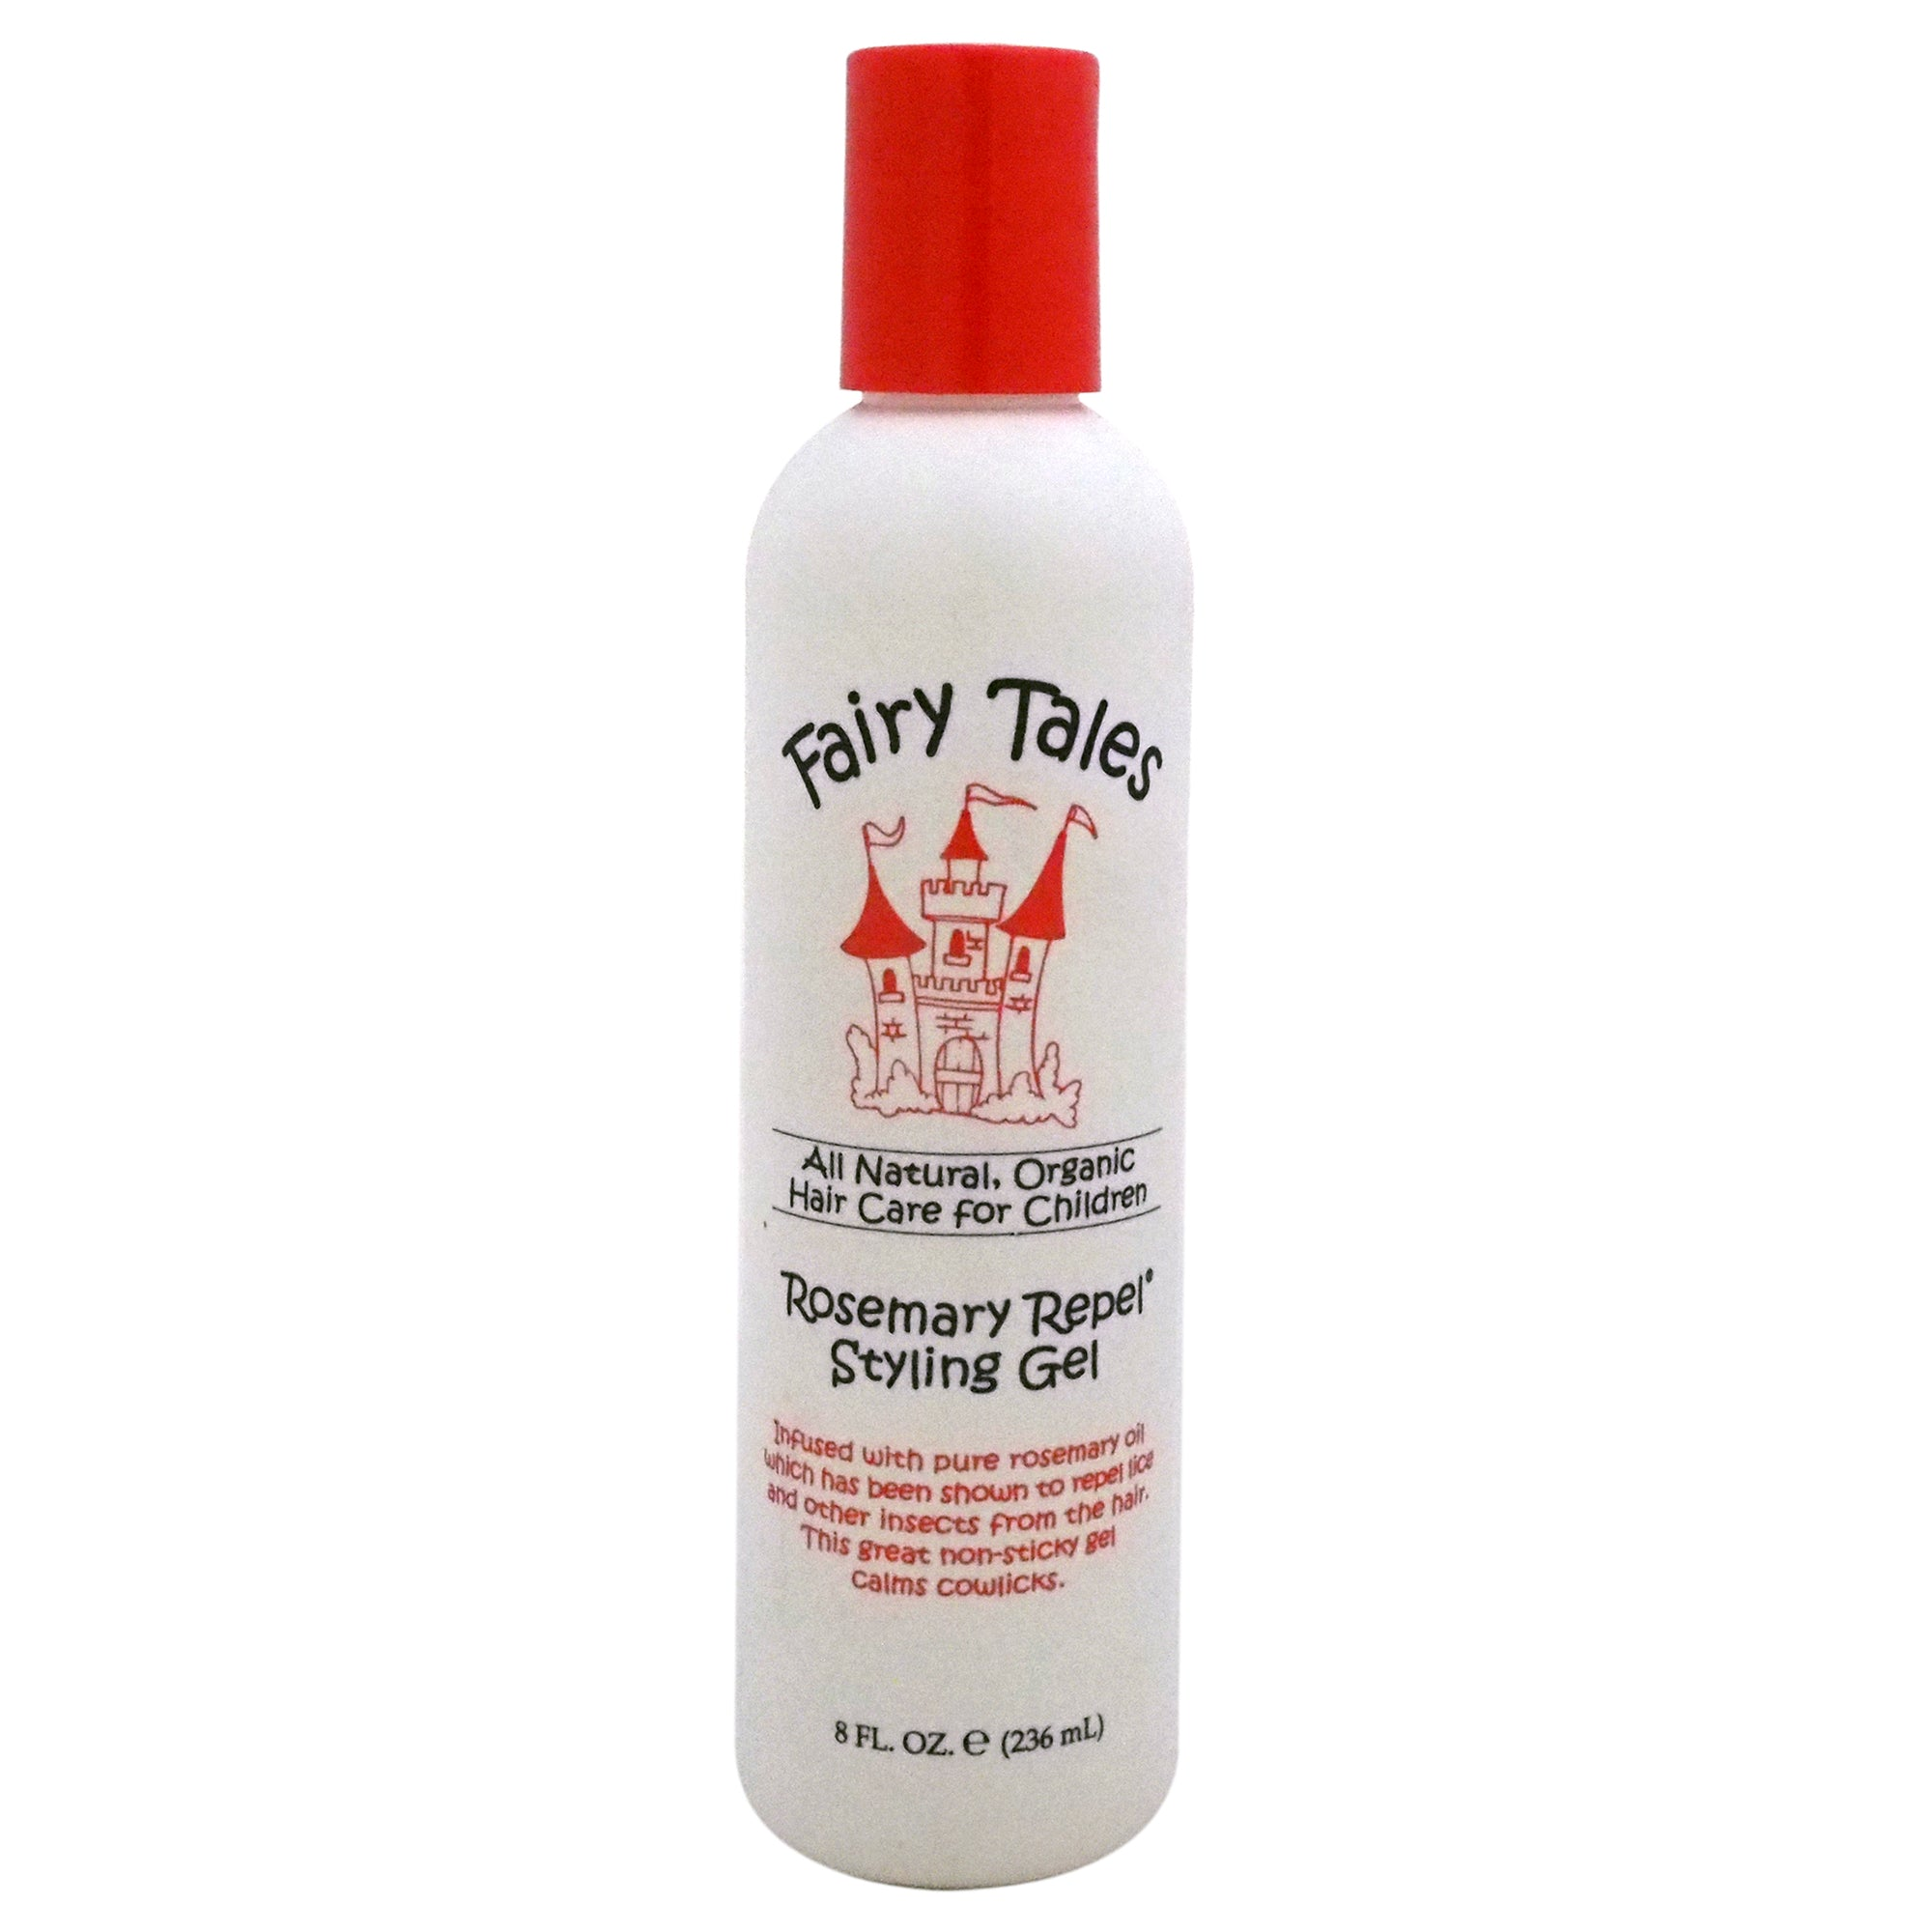 Fairy Tales Rosemary Repel Styling Gel